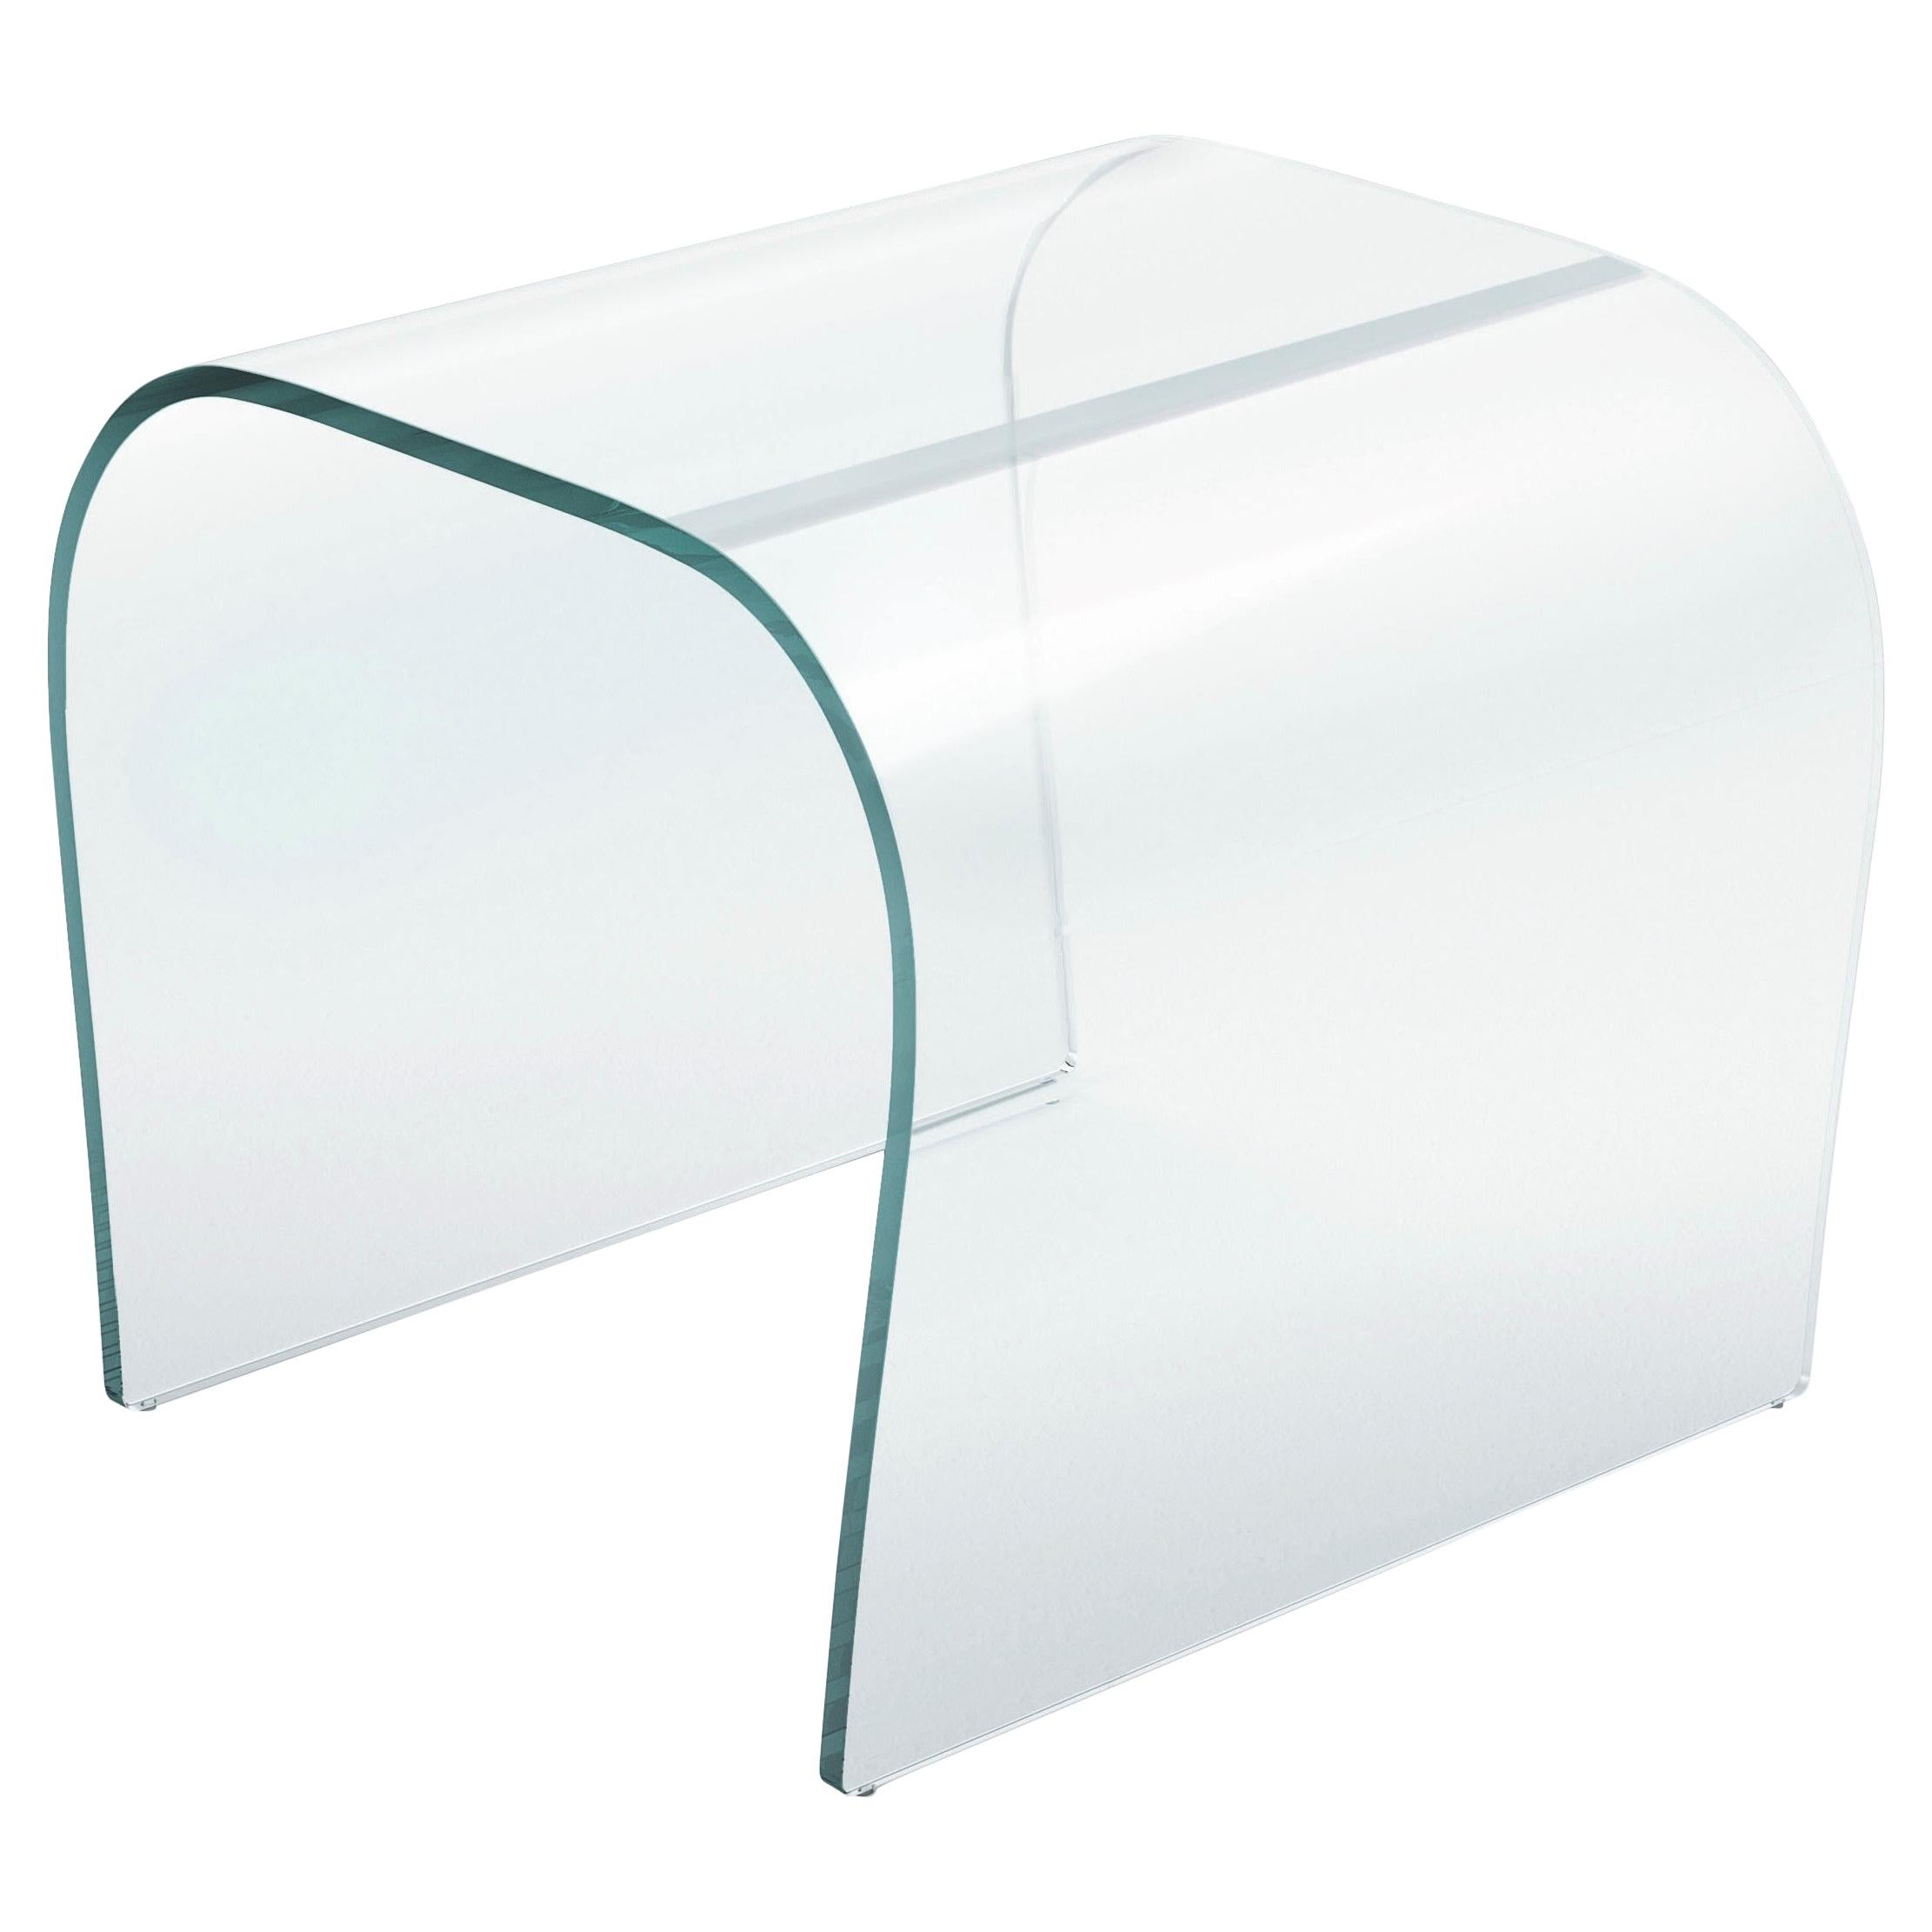 Bent Glass Stool in Extra Clear Glass, by Naoto Fukasawa from Glas Italia